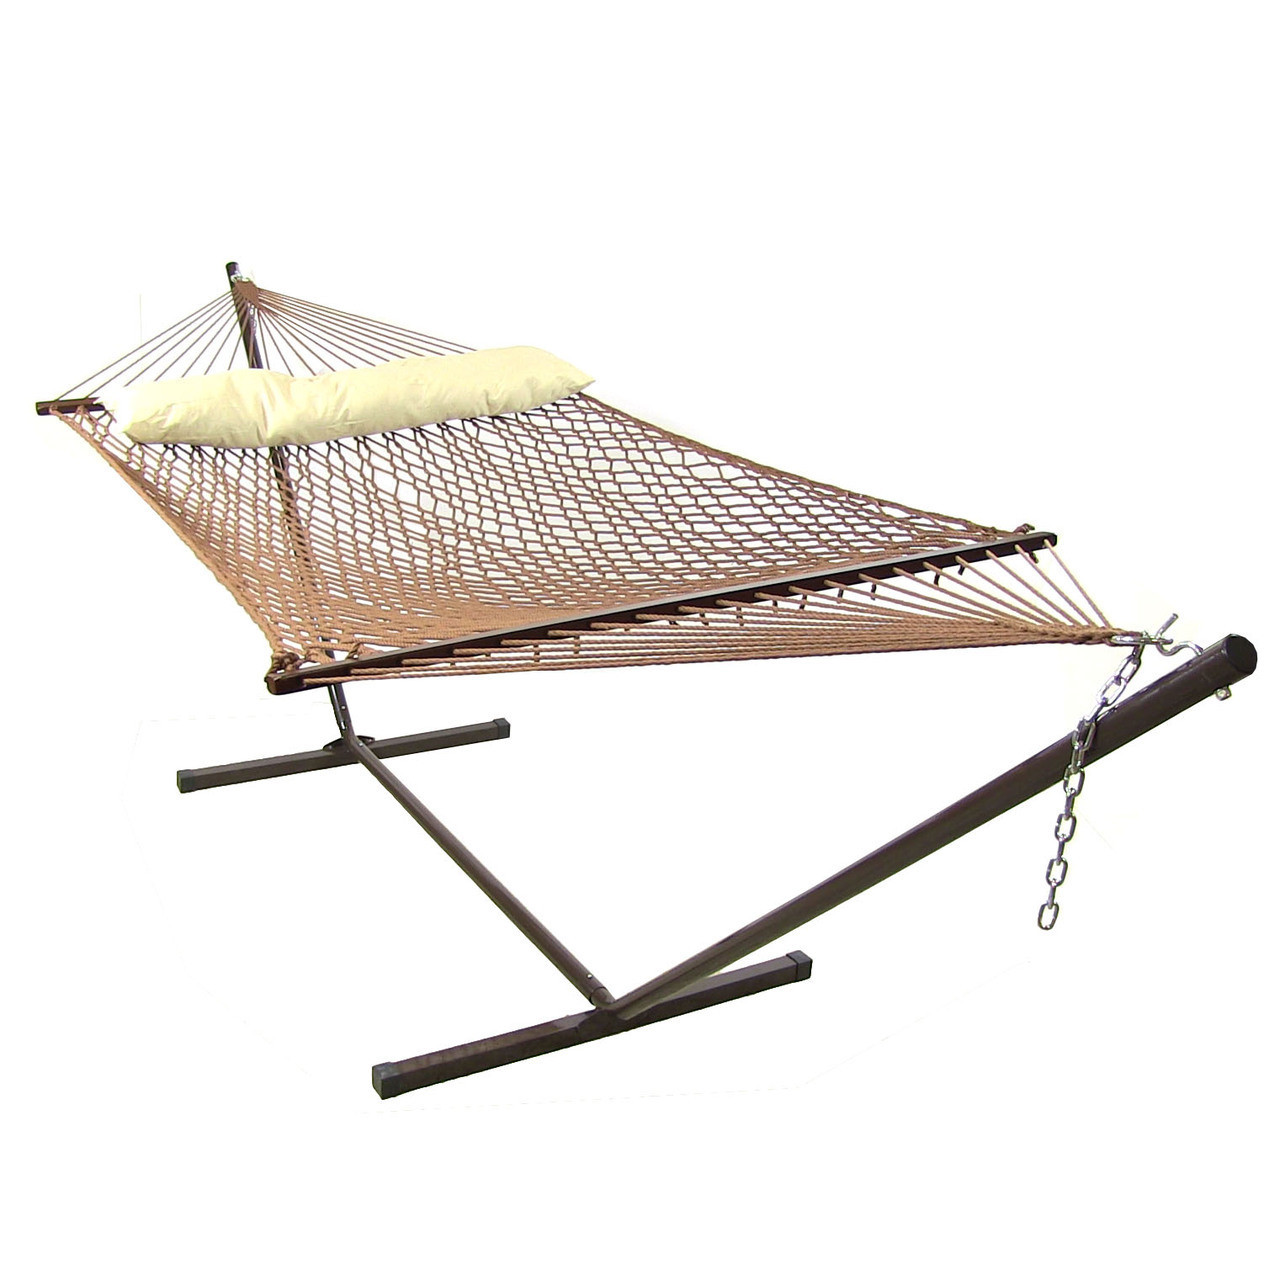 Sunnydaze Polyester Rope Hammock Spreader Bars Pillow Stand Combo Bro Picture 371